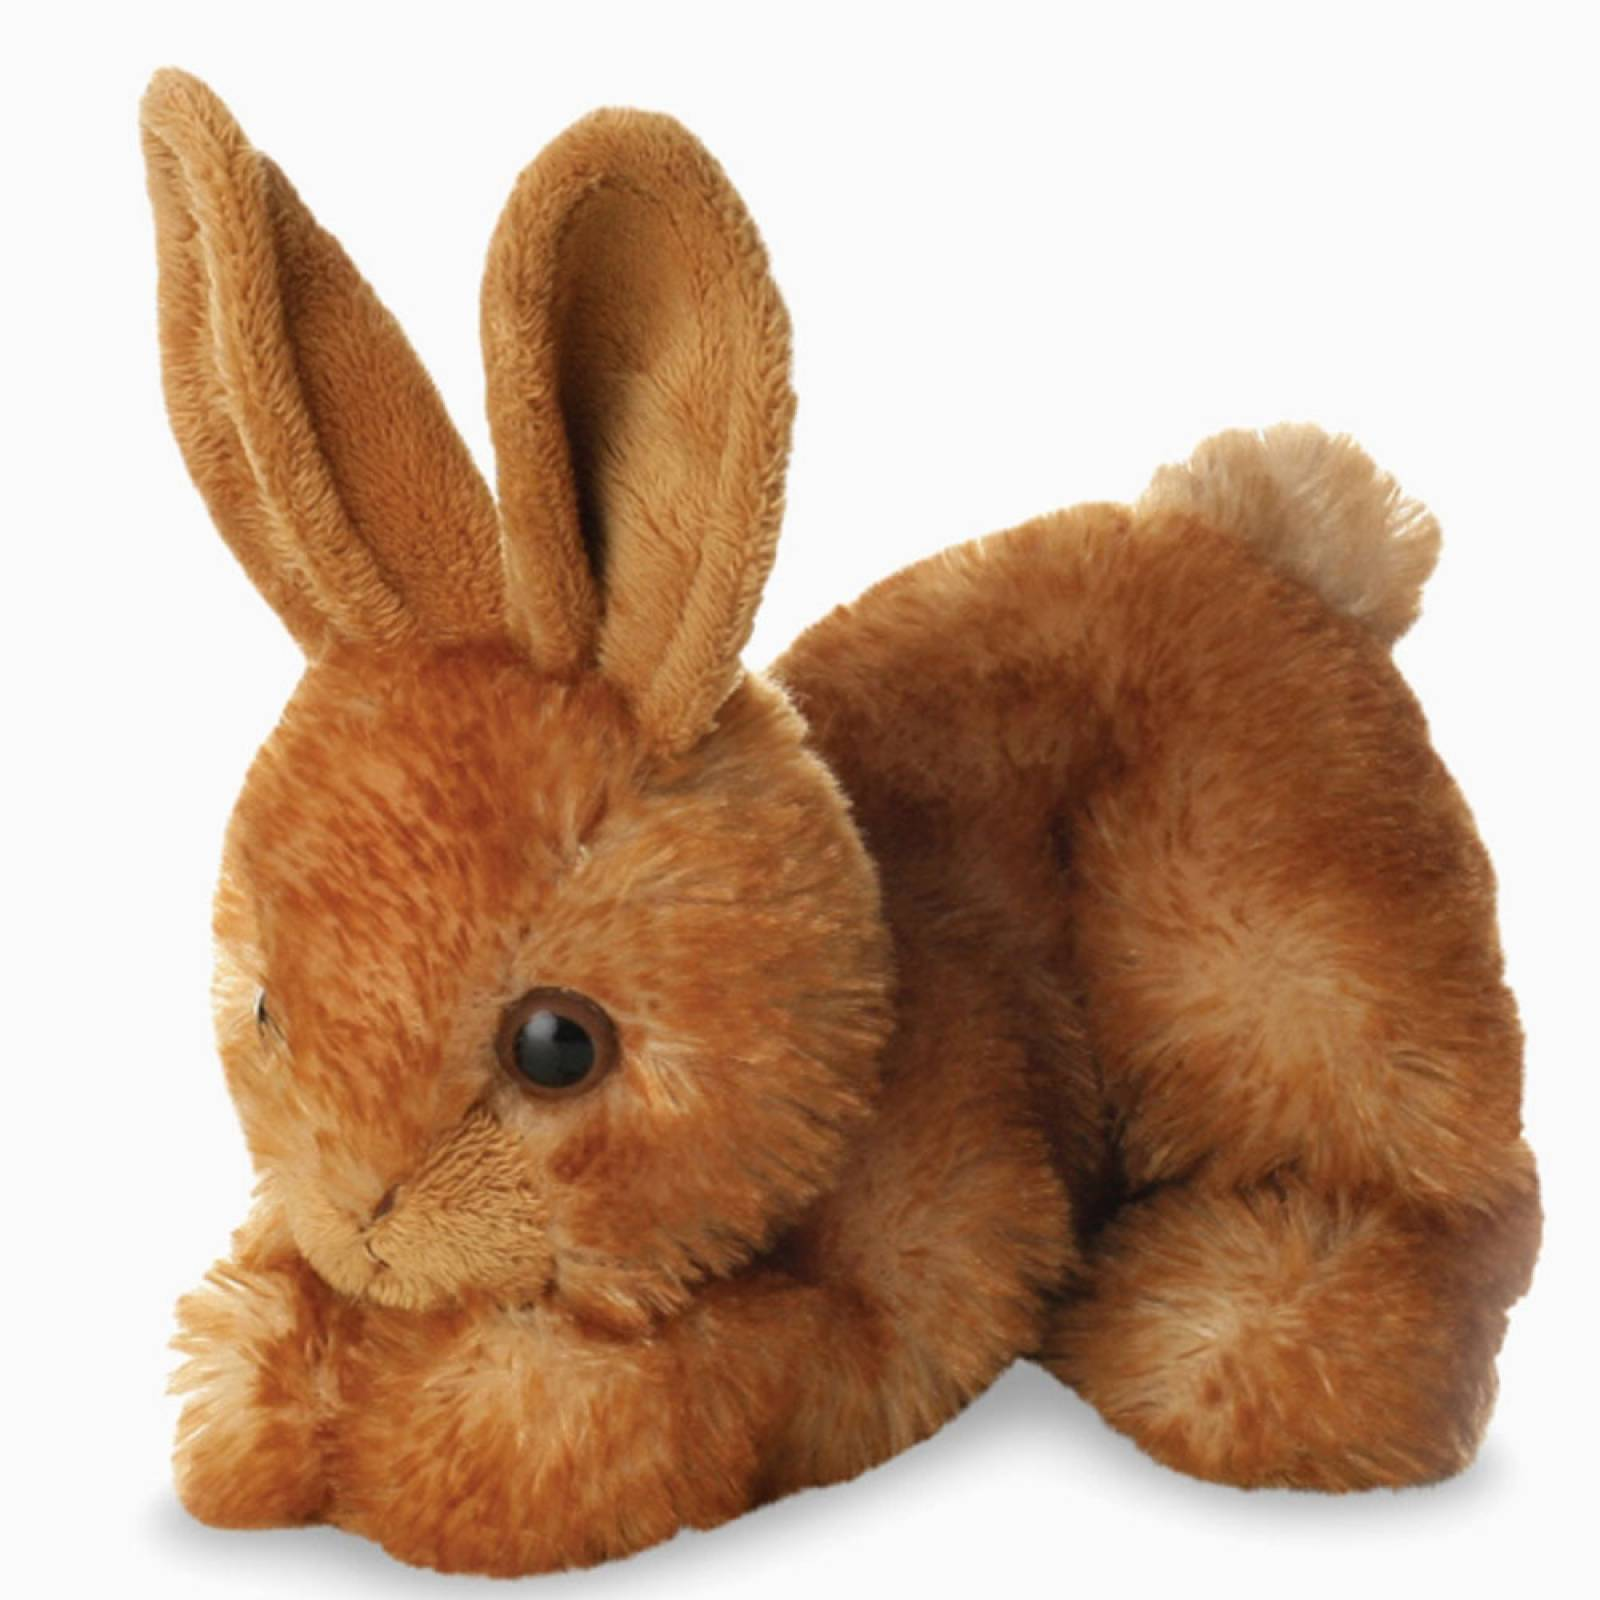 Mini Flopsie - Bitty Bunny Rabbit Soft Toy 20cm